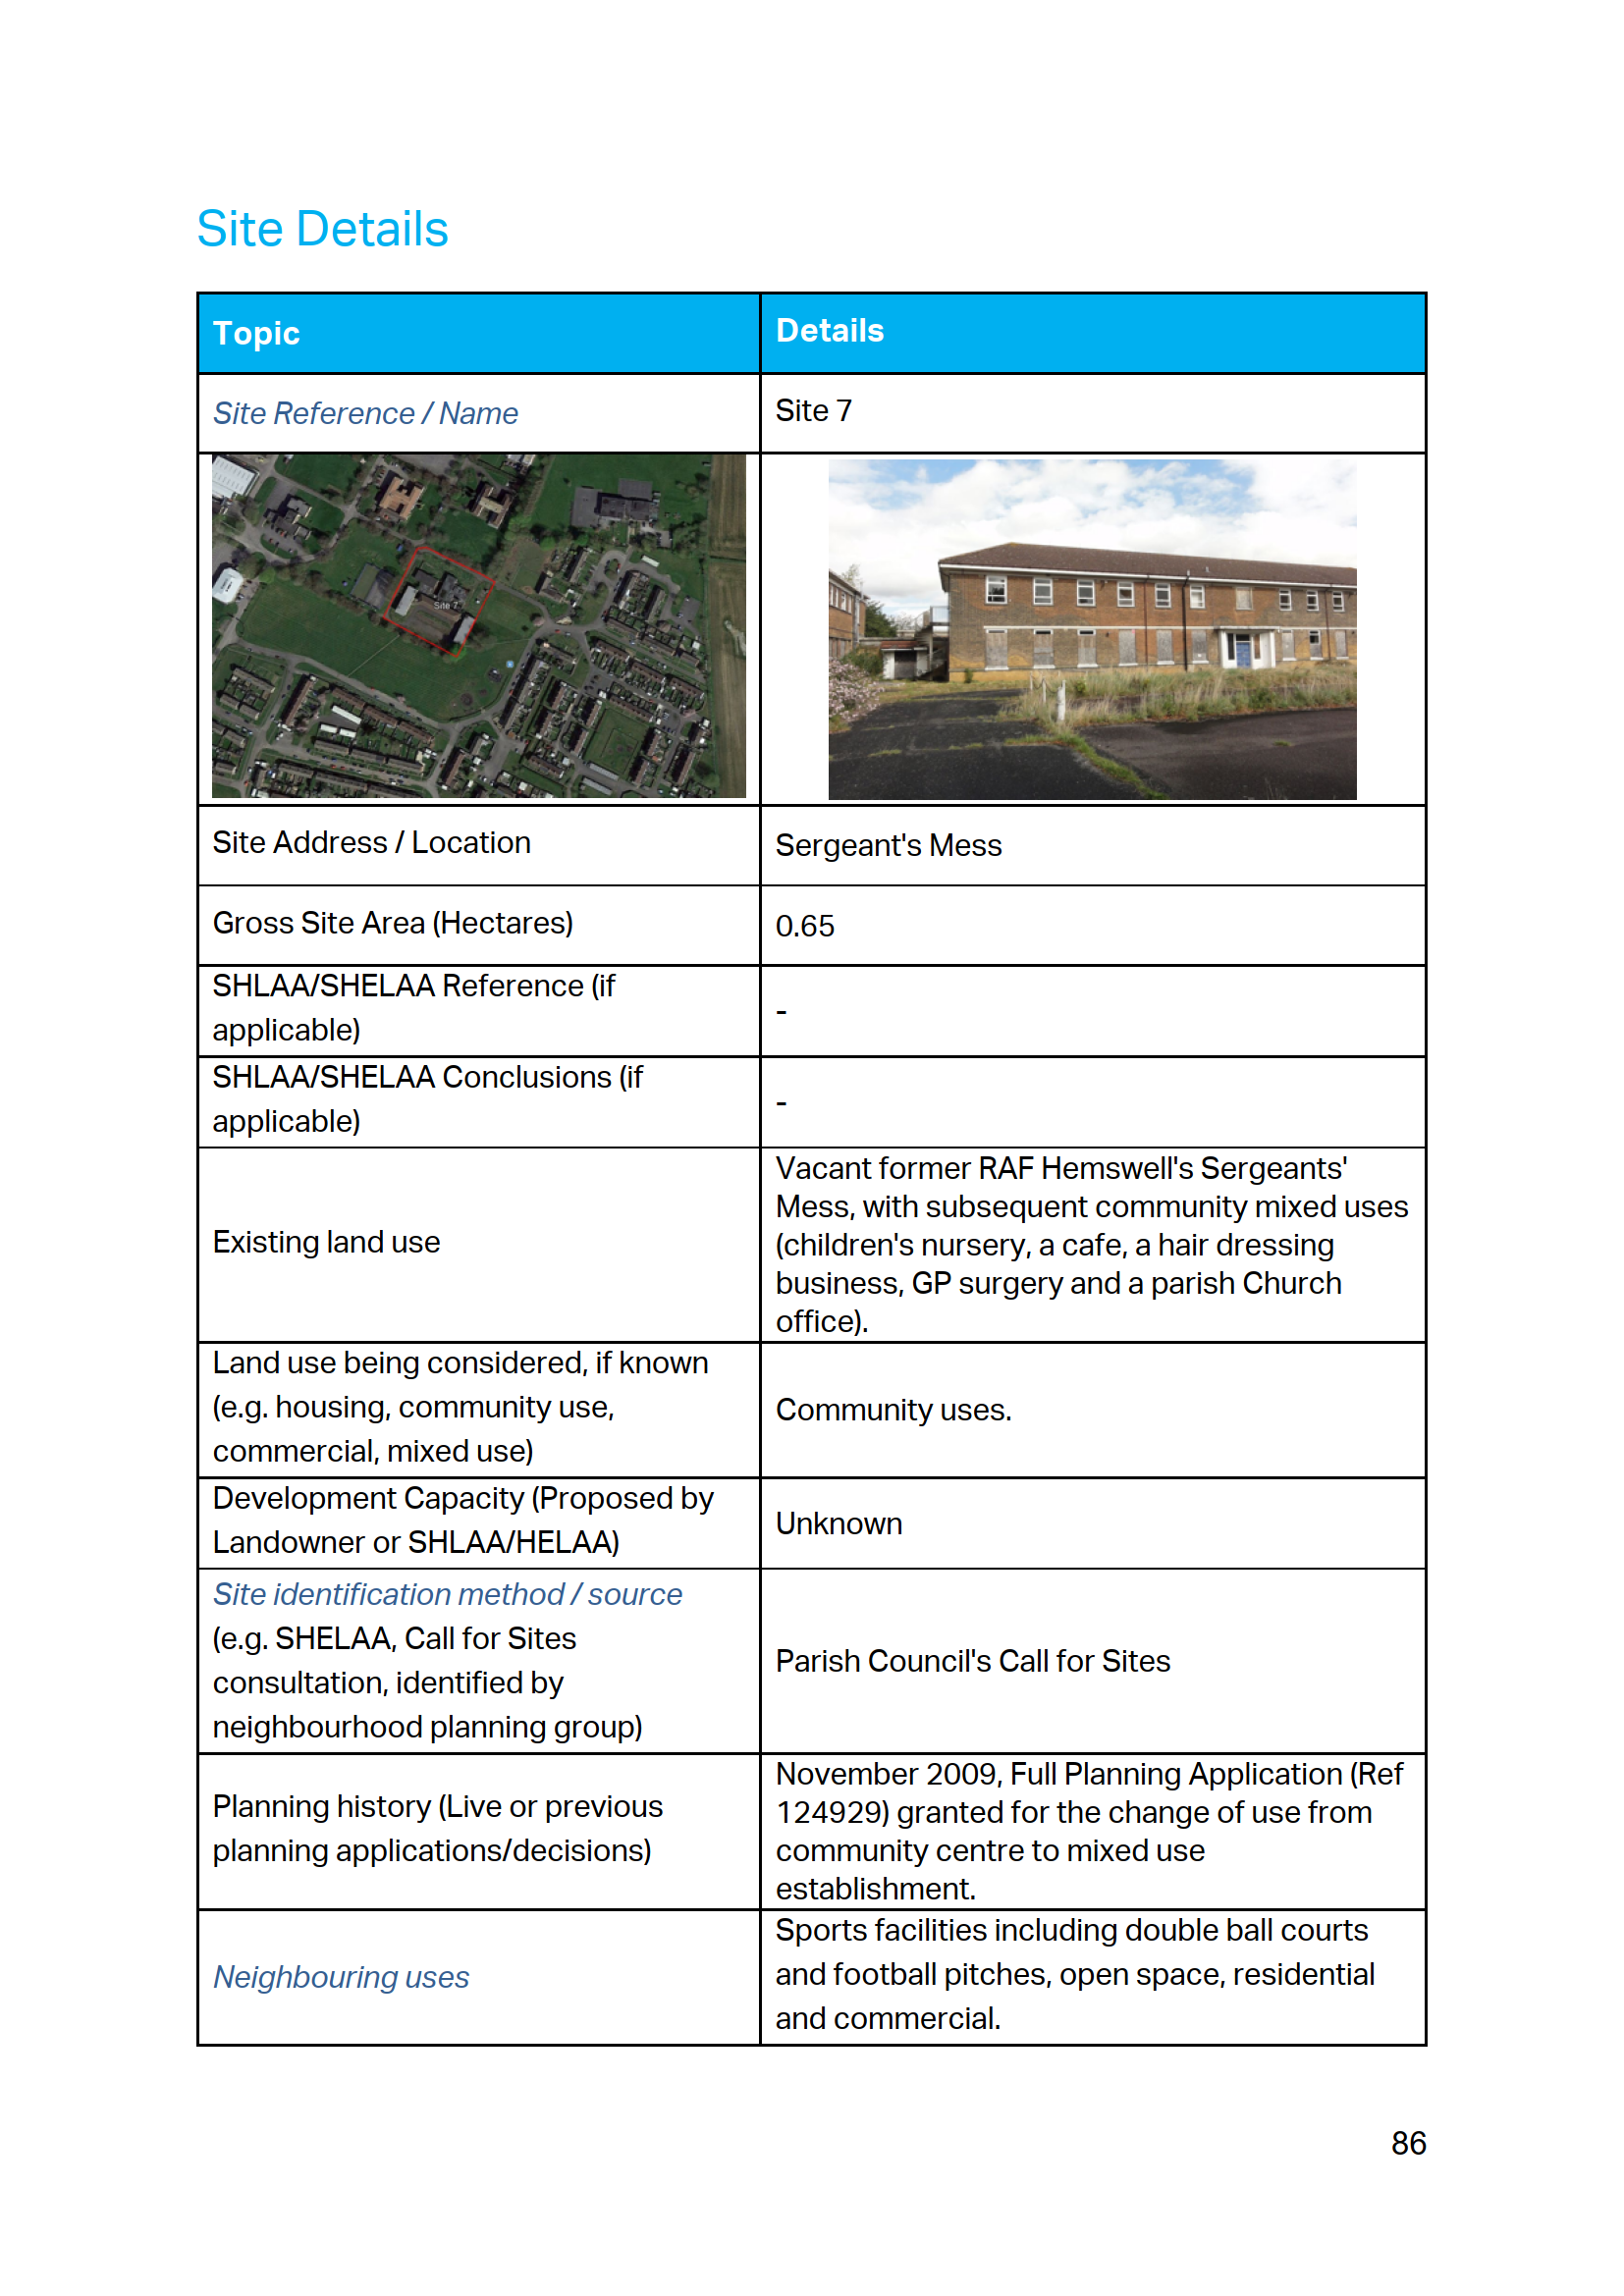 Hemswell_Cliff_Site_Options_and_Assessment_Final_041119-2_86.png